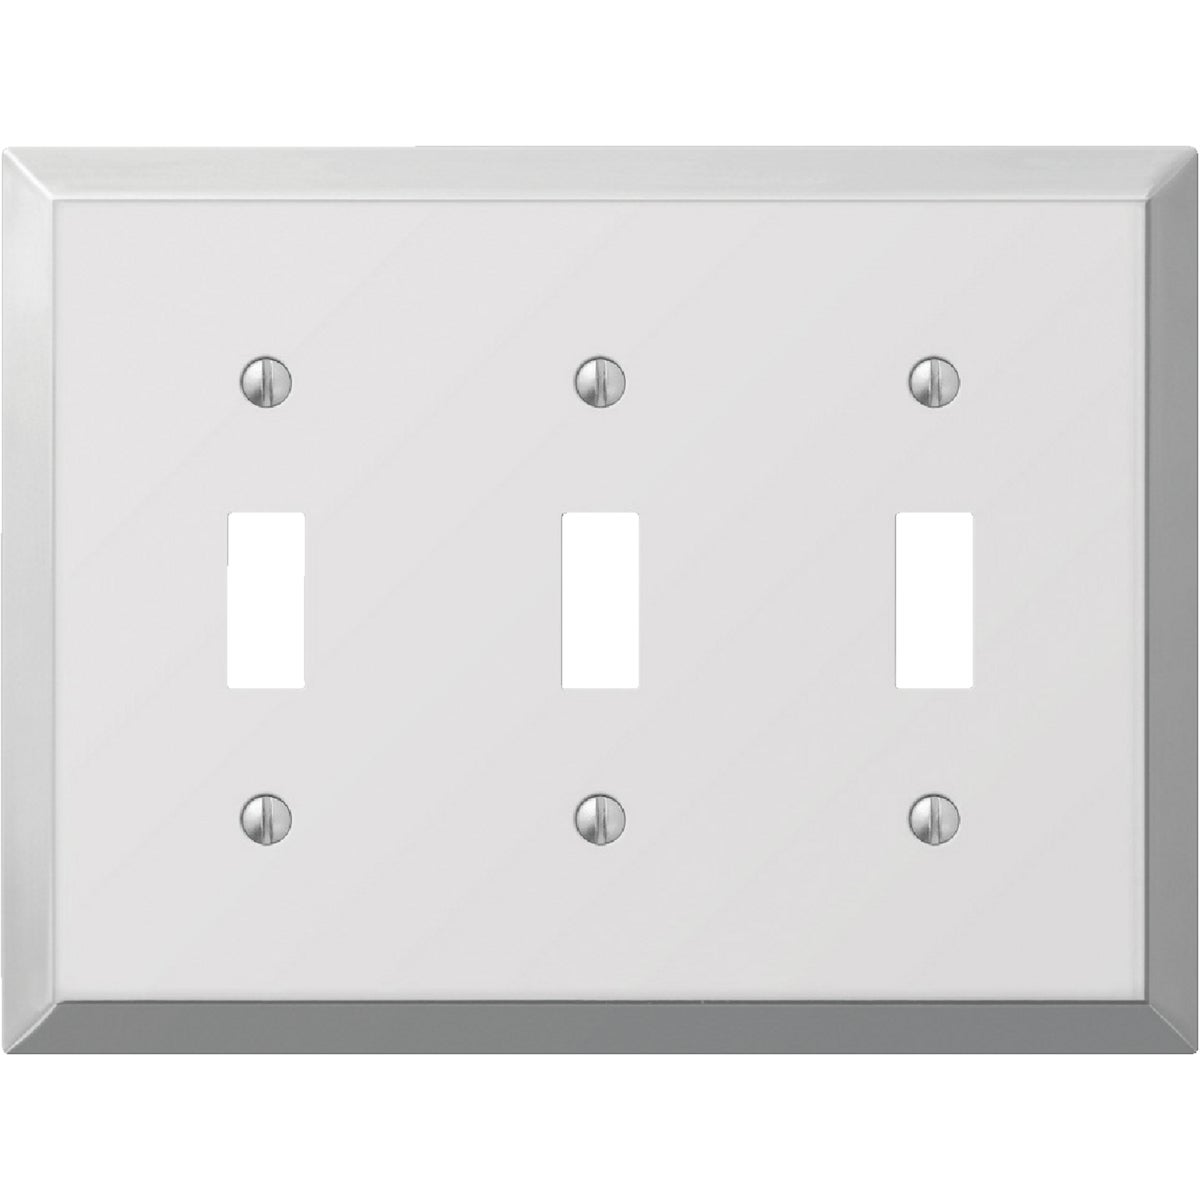 3TGL PCHRM WALLPLATE - 9CS103 by Jackson Deerfield Mf